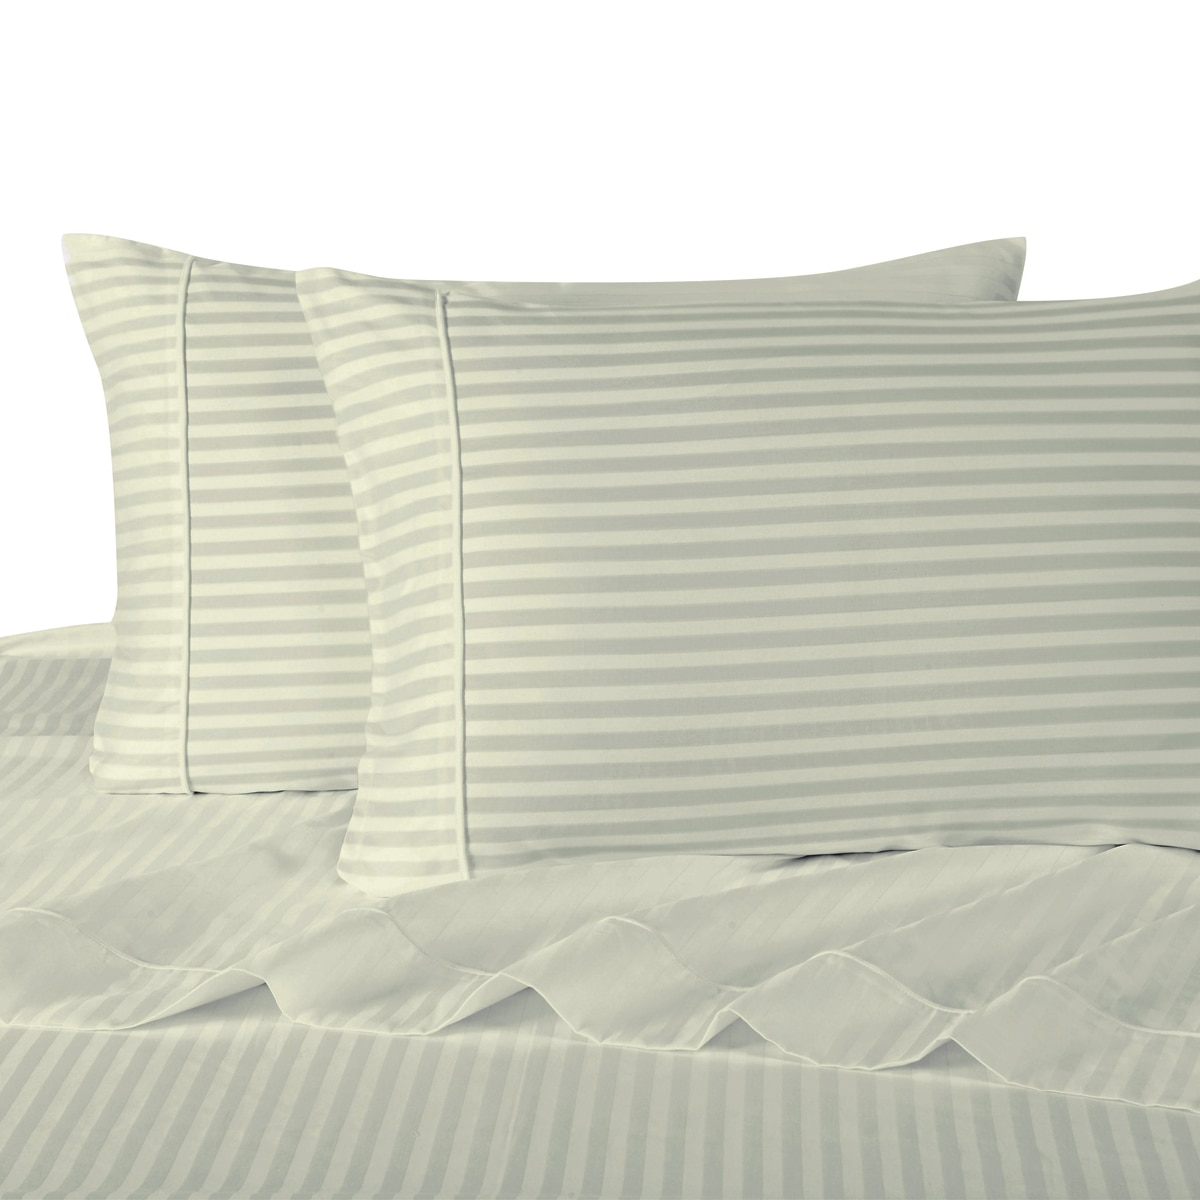 Attached Waterbed Sheets 100% Cotton 300 Thread Count Damask Striped- Queen - White